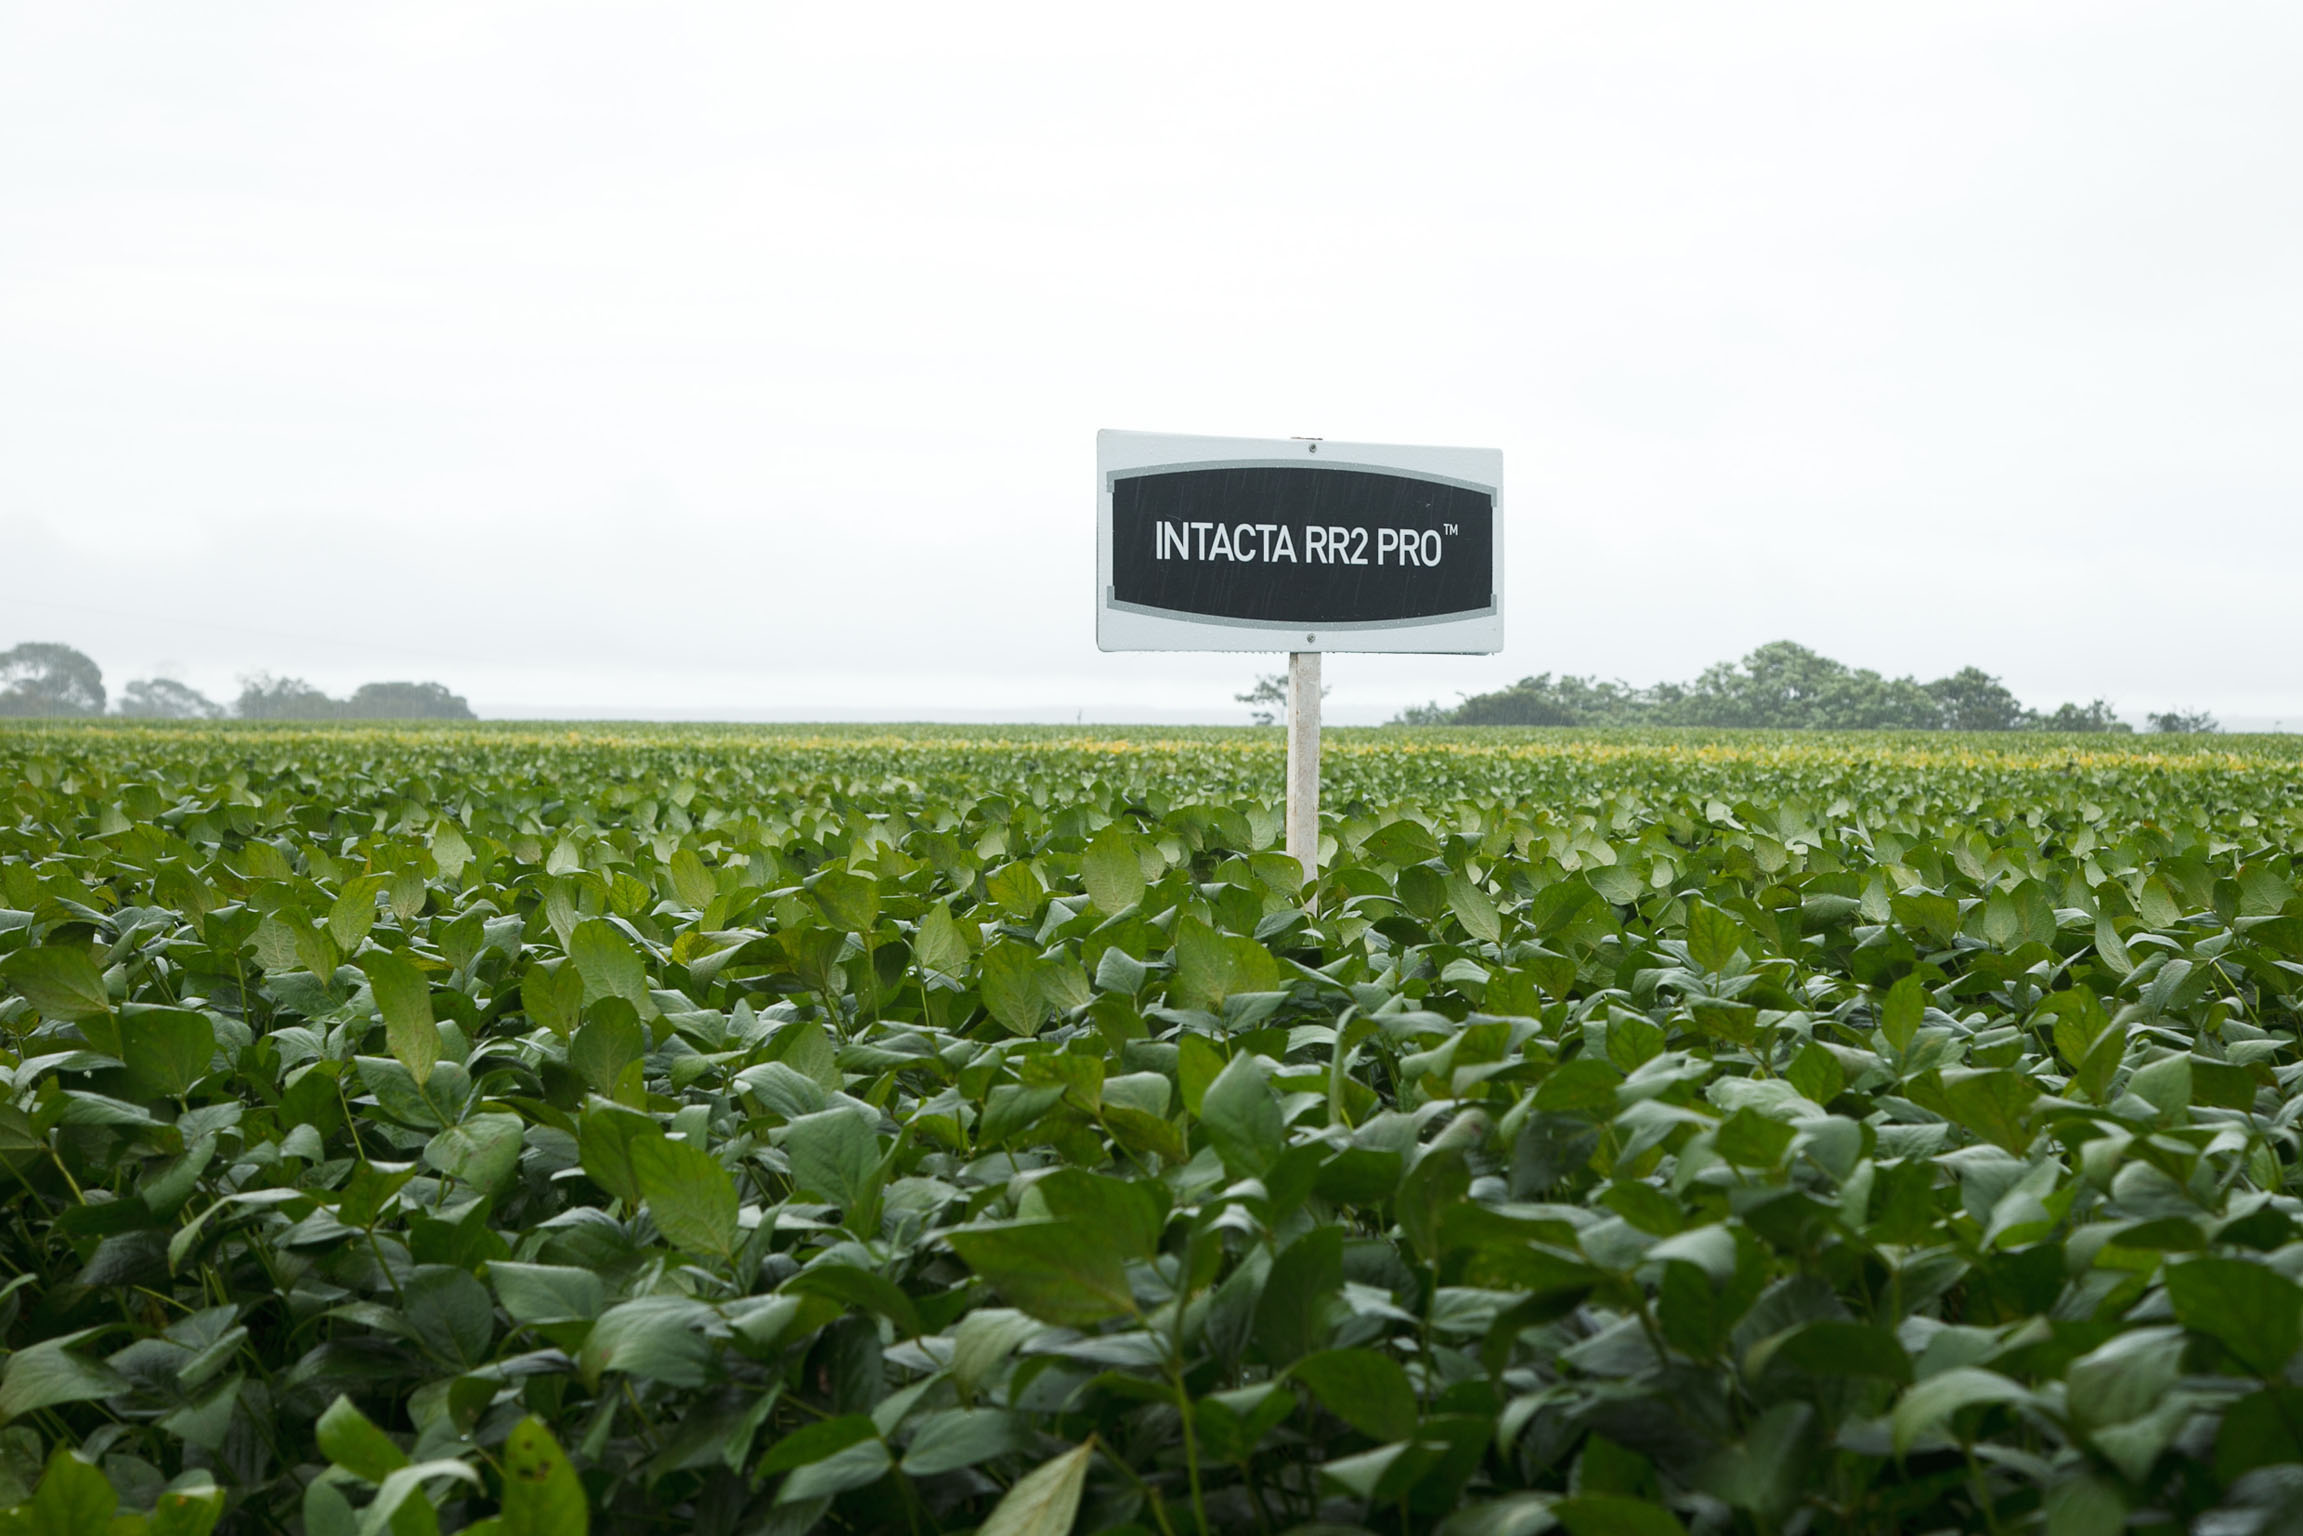 STUDY: Bayer's Intacta RR2 PRO™ soybeans technology helps farmers